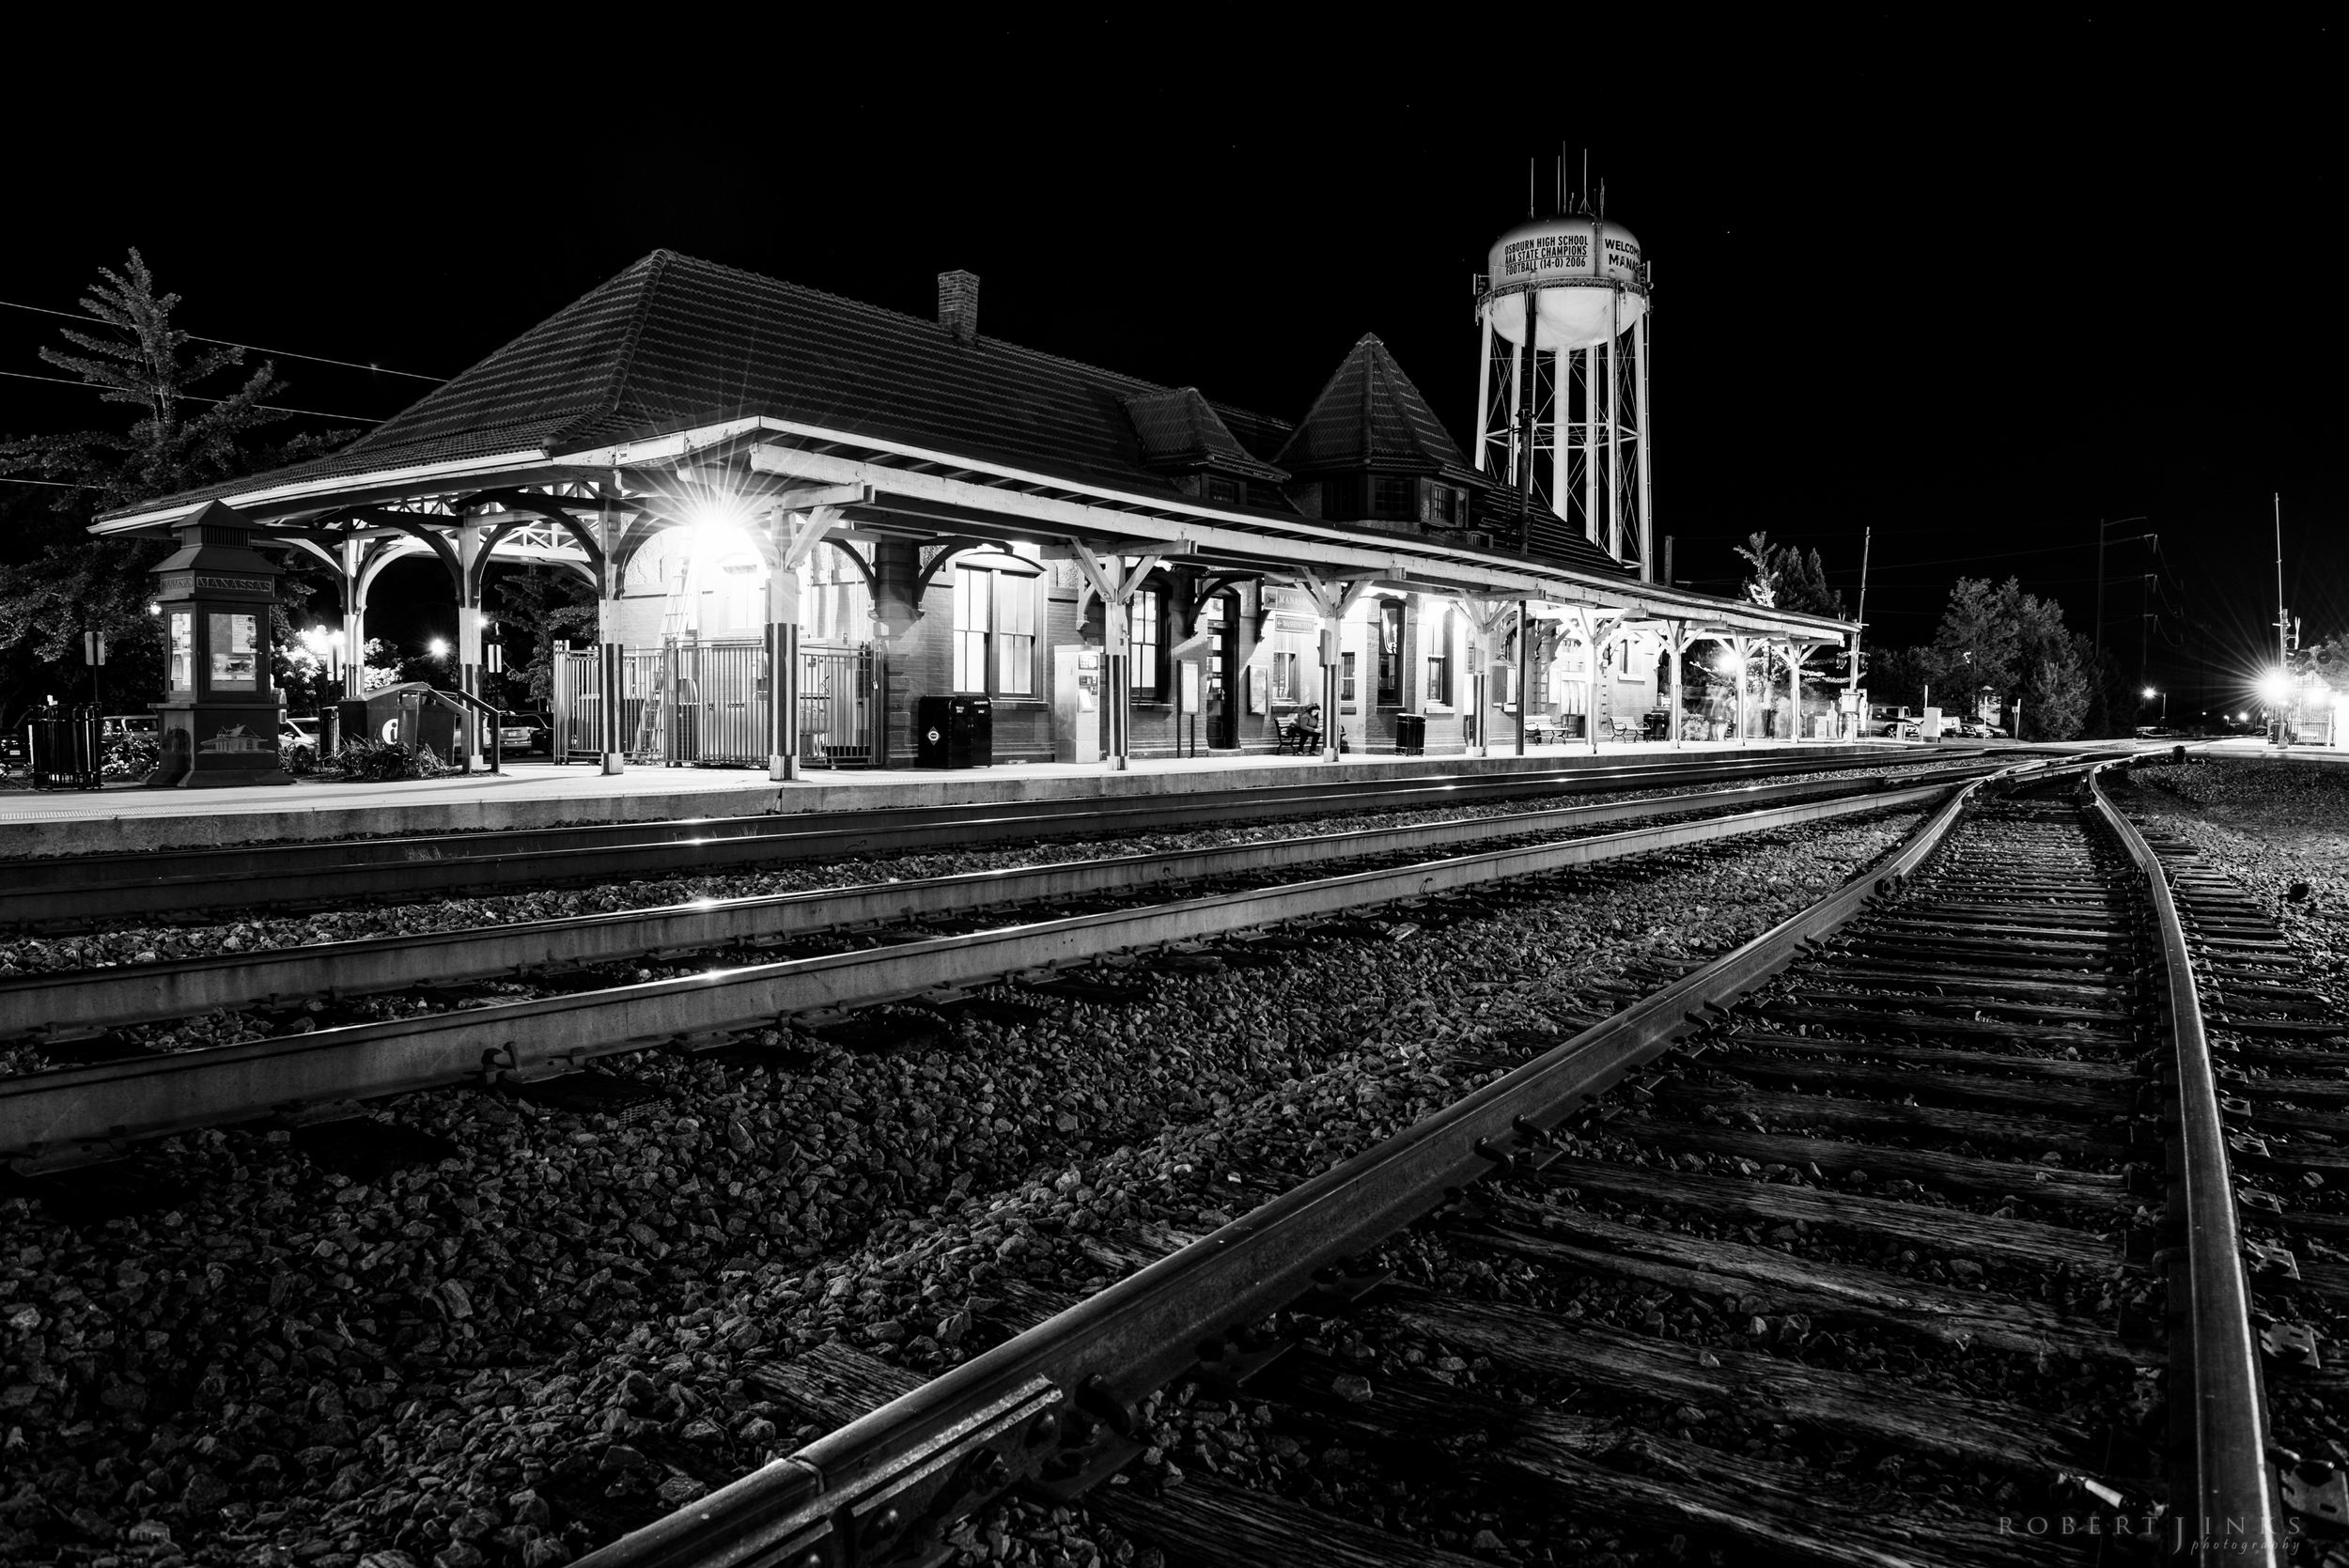 The train station in Historic Old Town Manassas